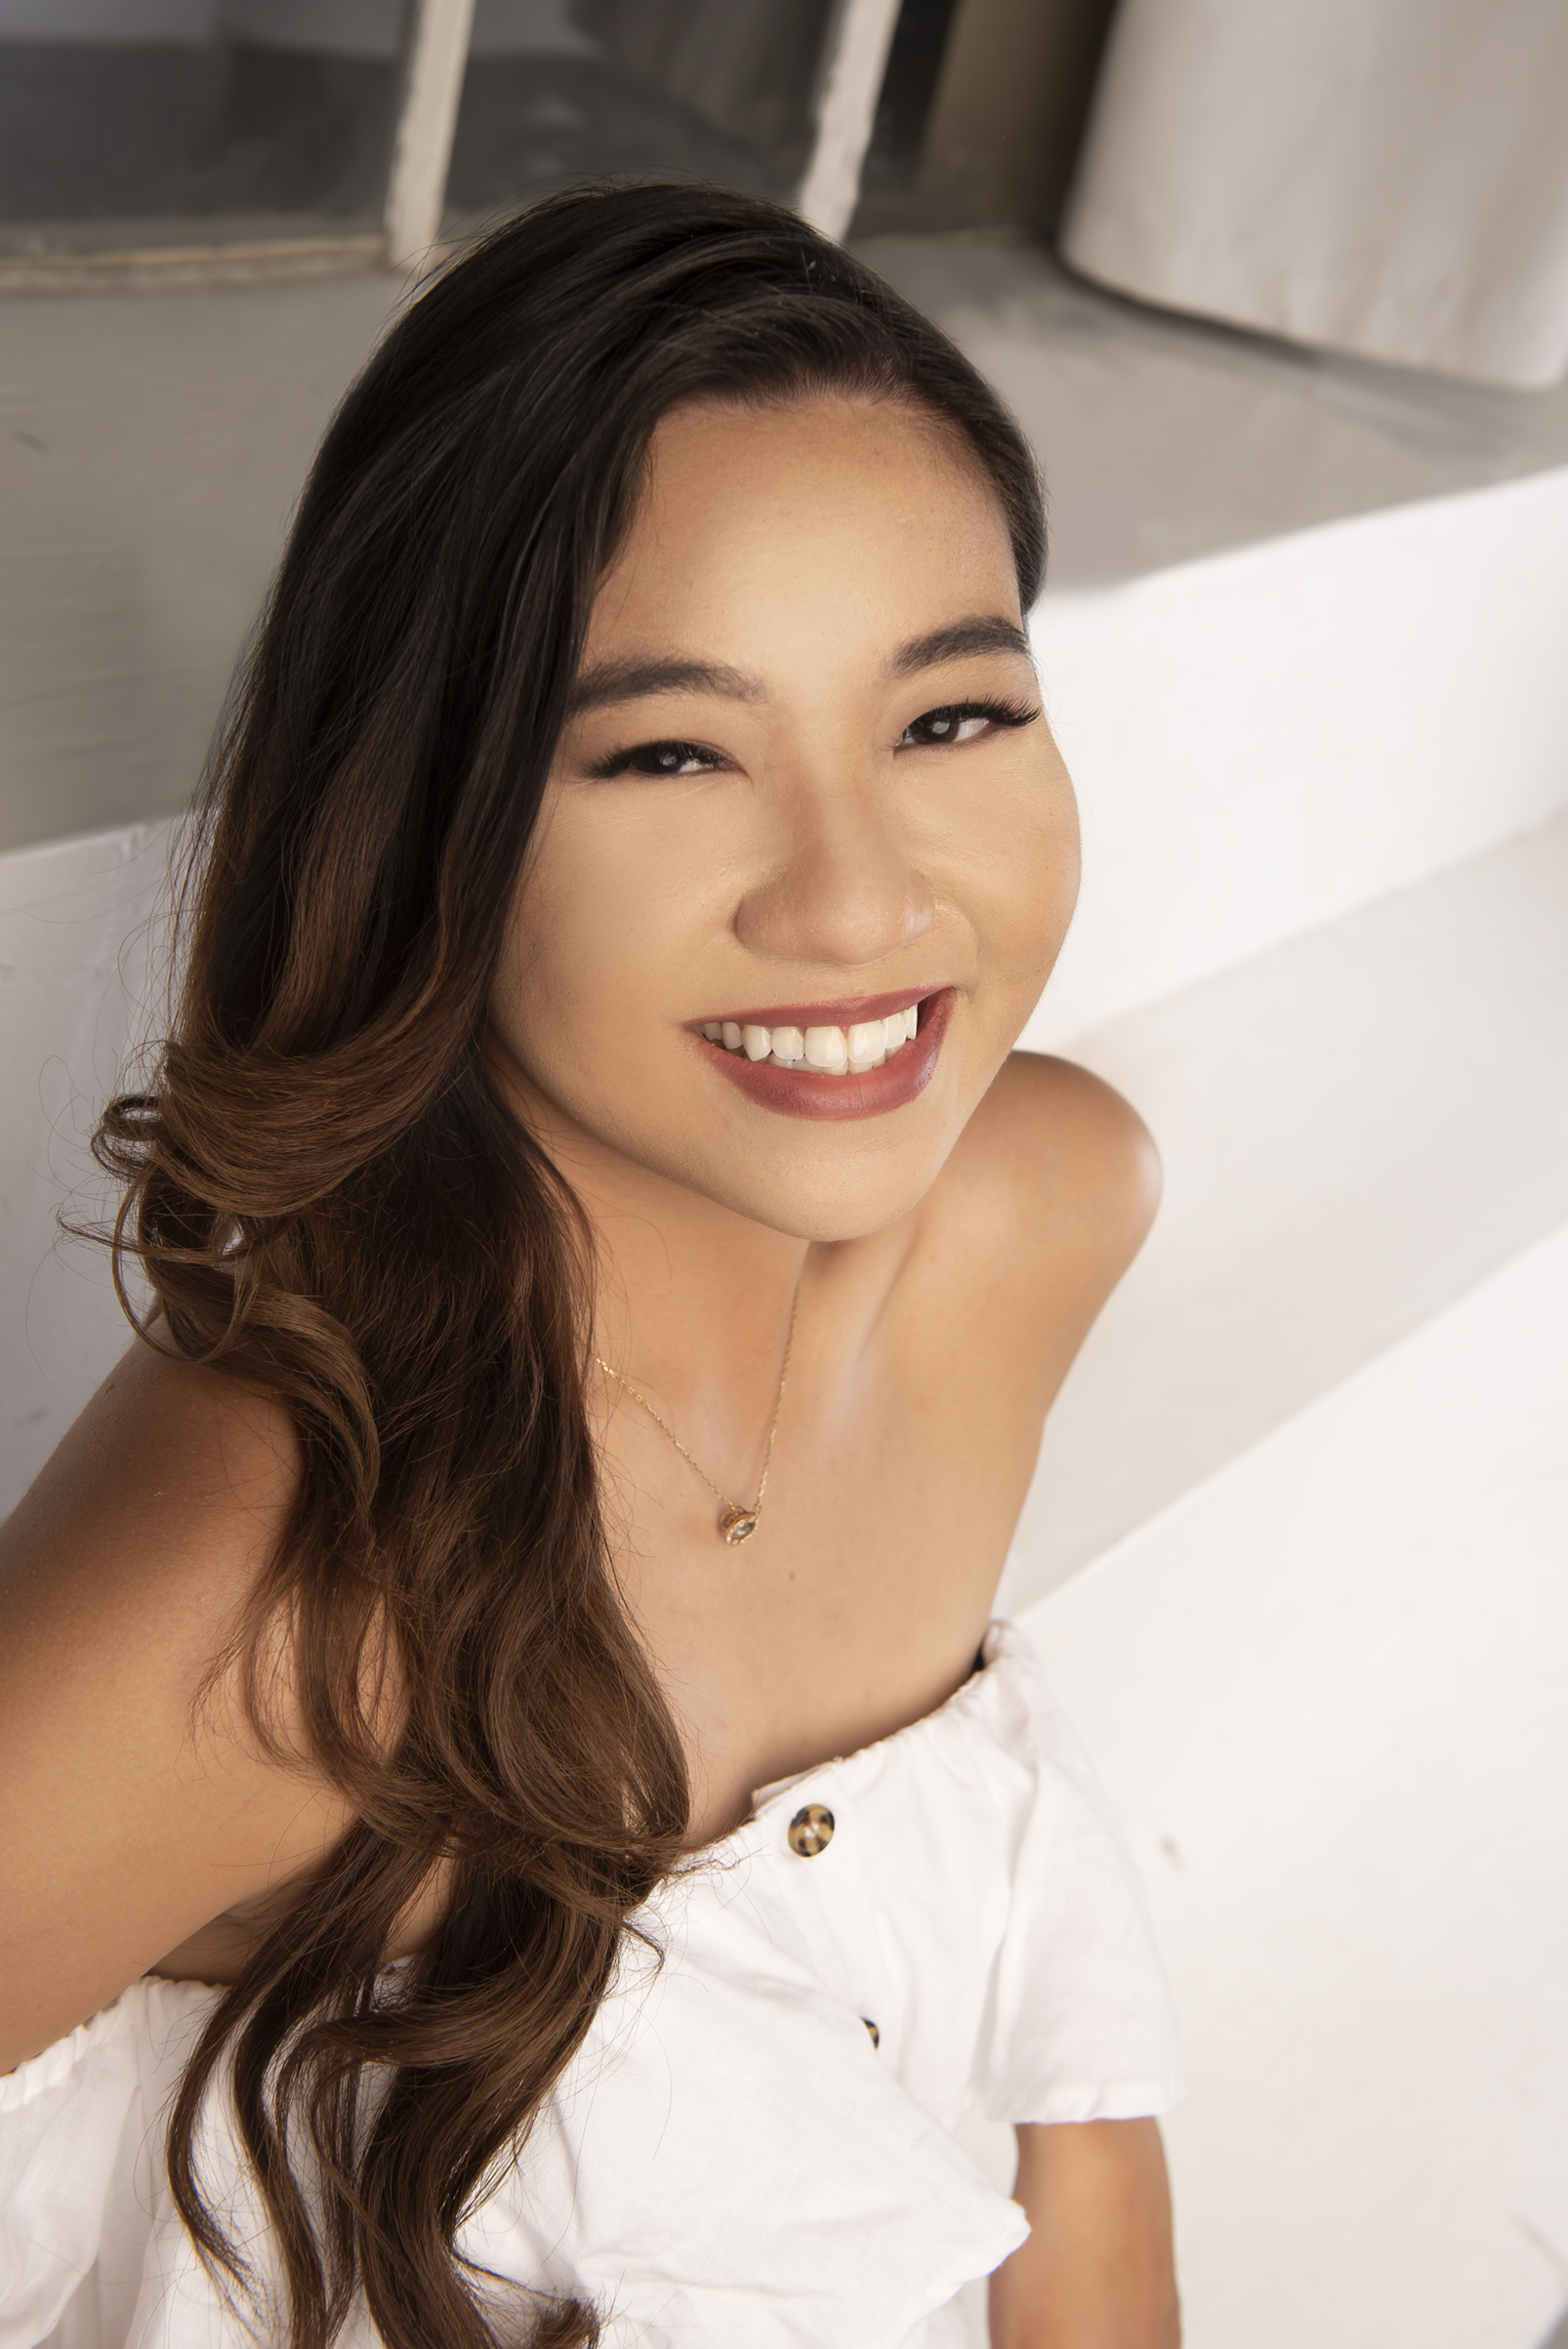 Actress during a professional headshot session in Los Angeles